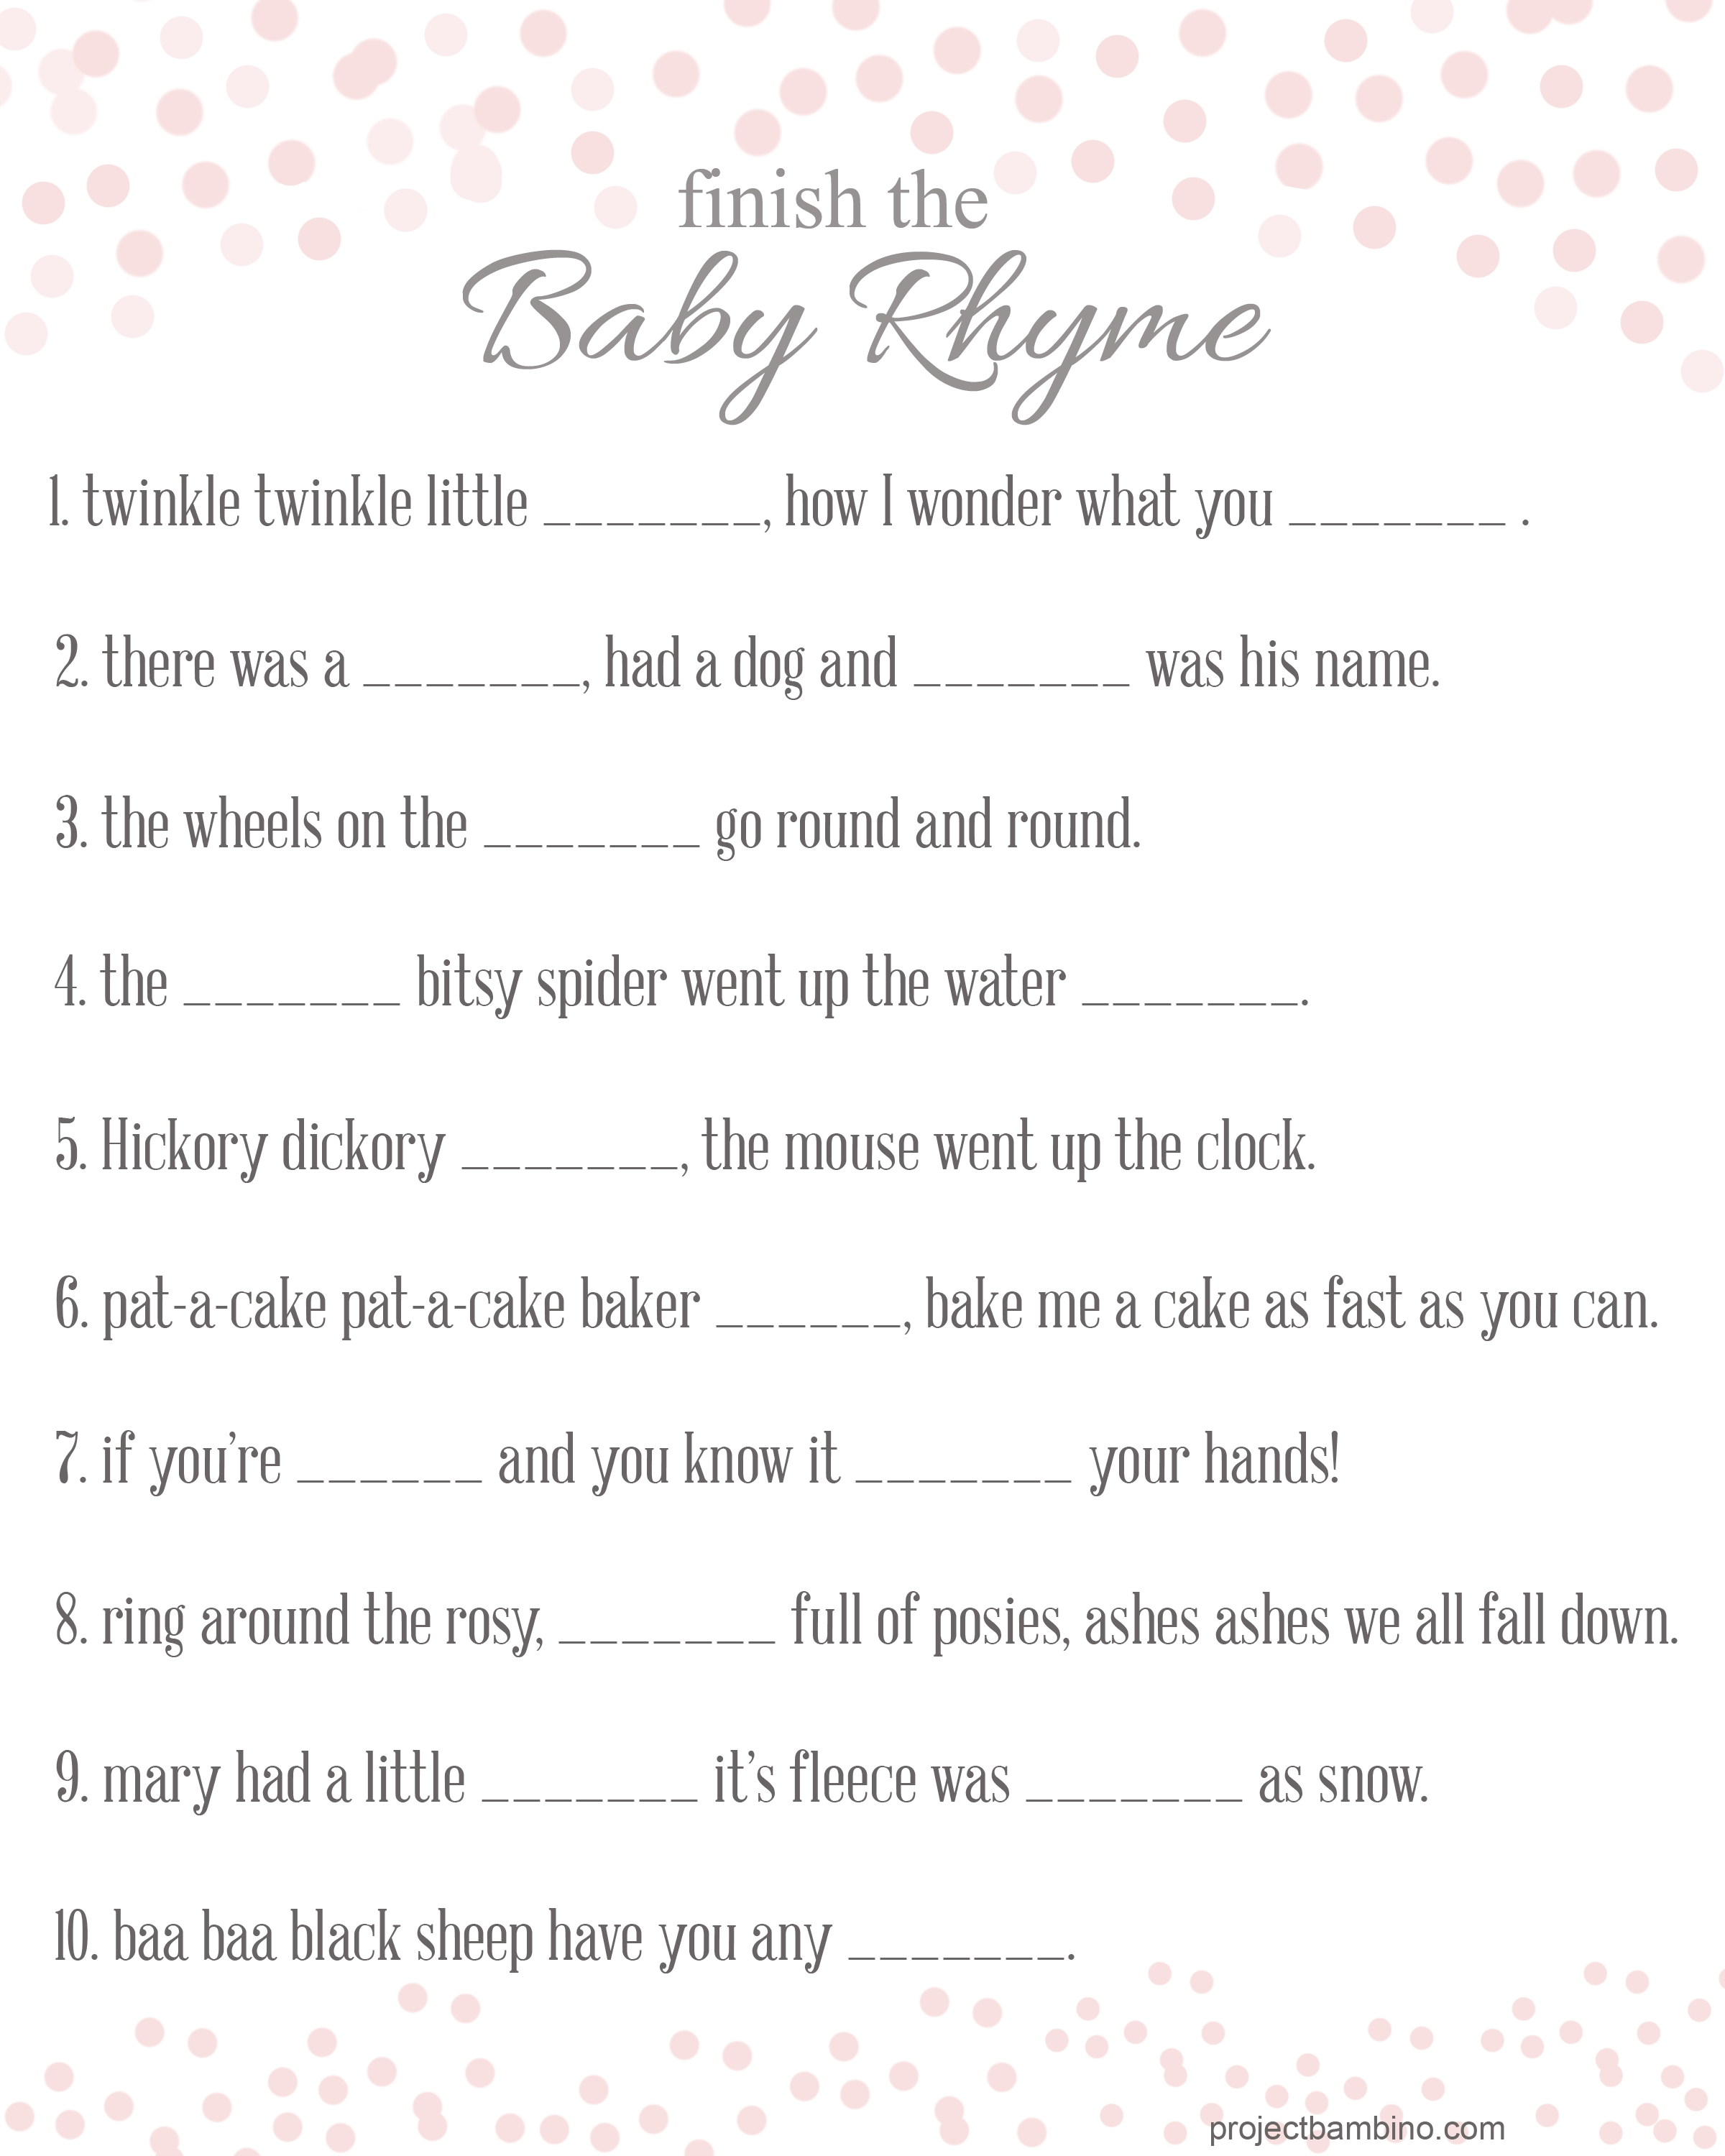 10 Stylish Free Baby Shower Games Ideas free printable baby shower games for girls wedding 2020